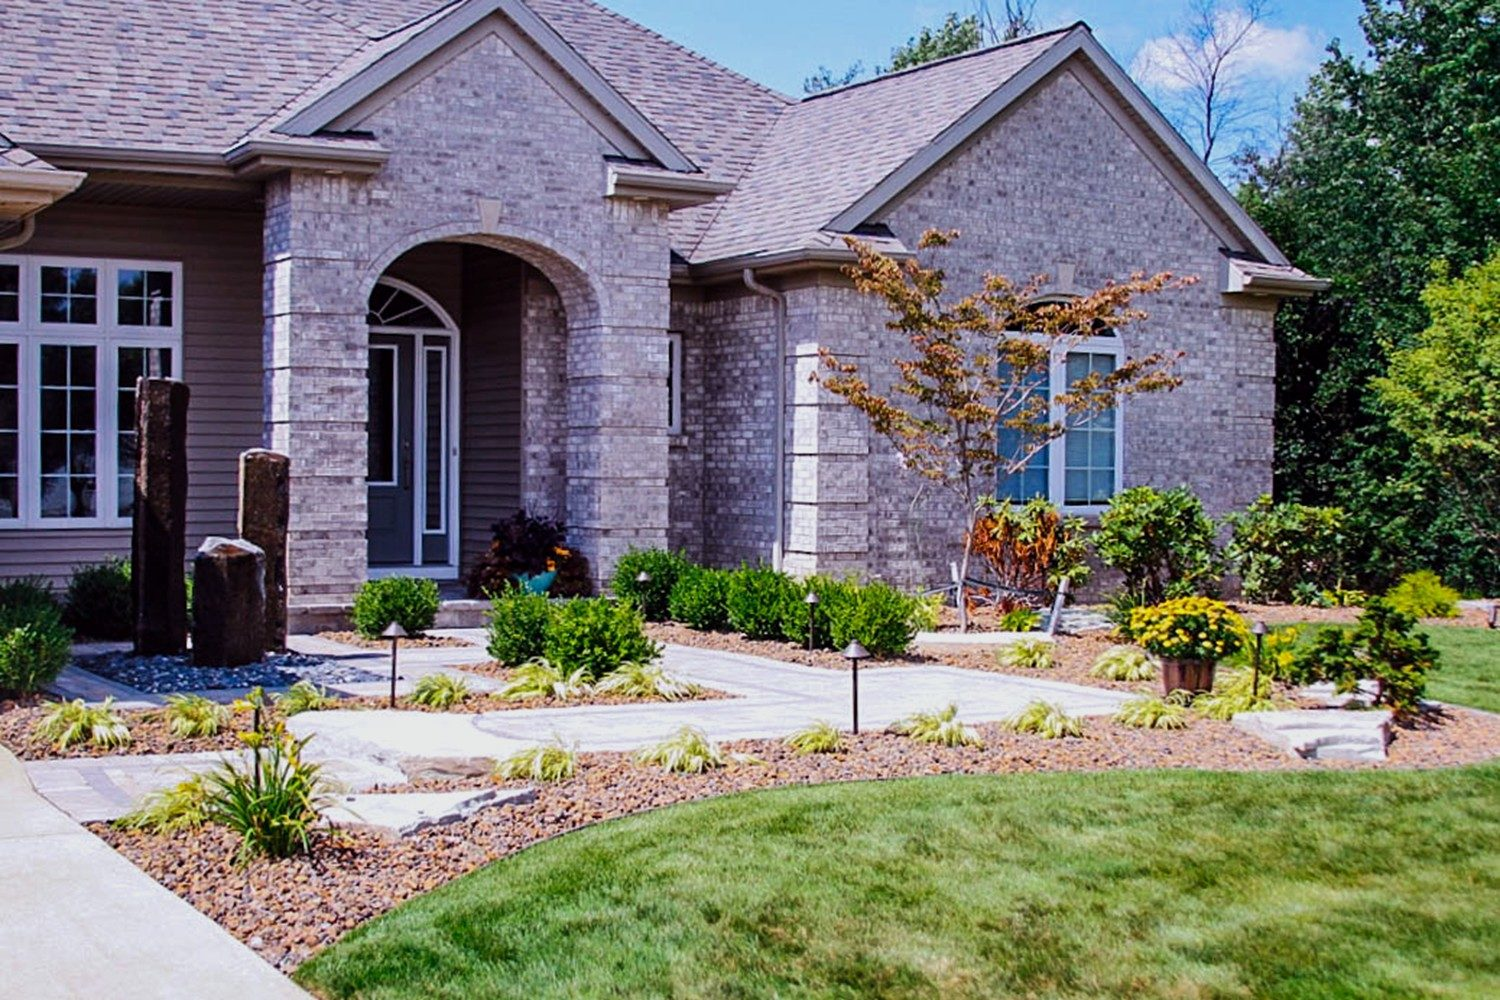 Landscape Designers in Grand Rapids MI